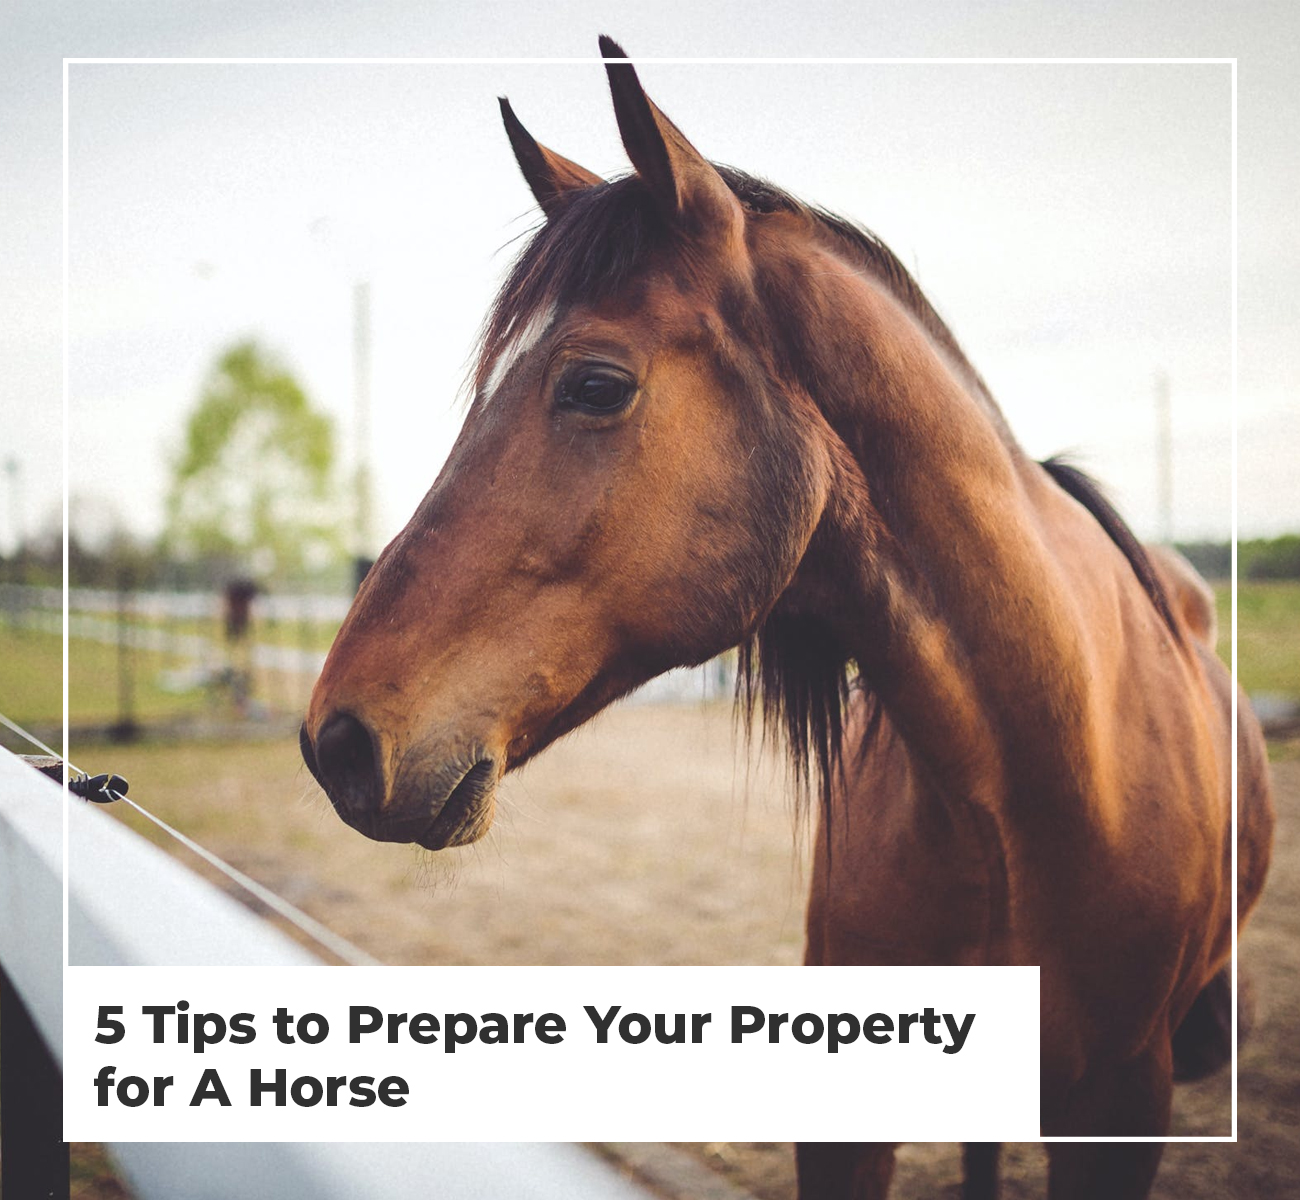 5 Tips to Prepare Your Property for a Horse